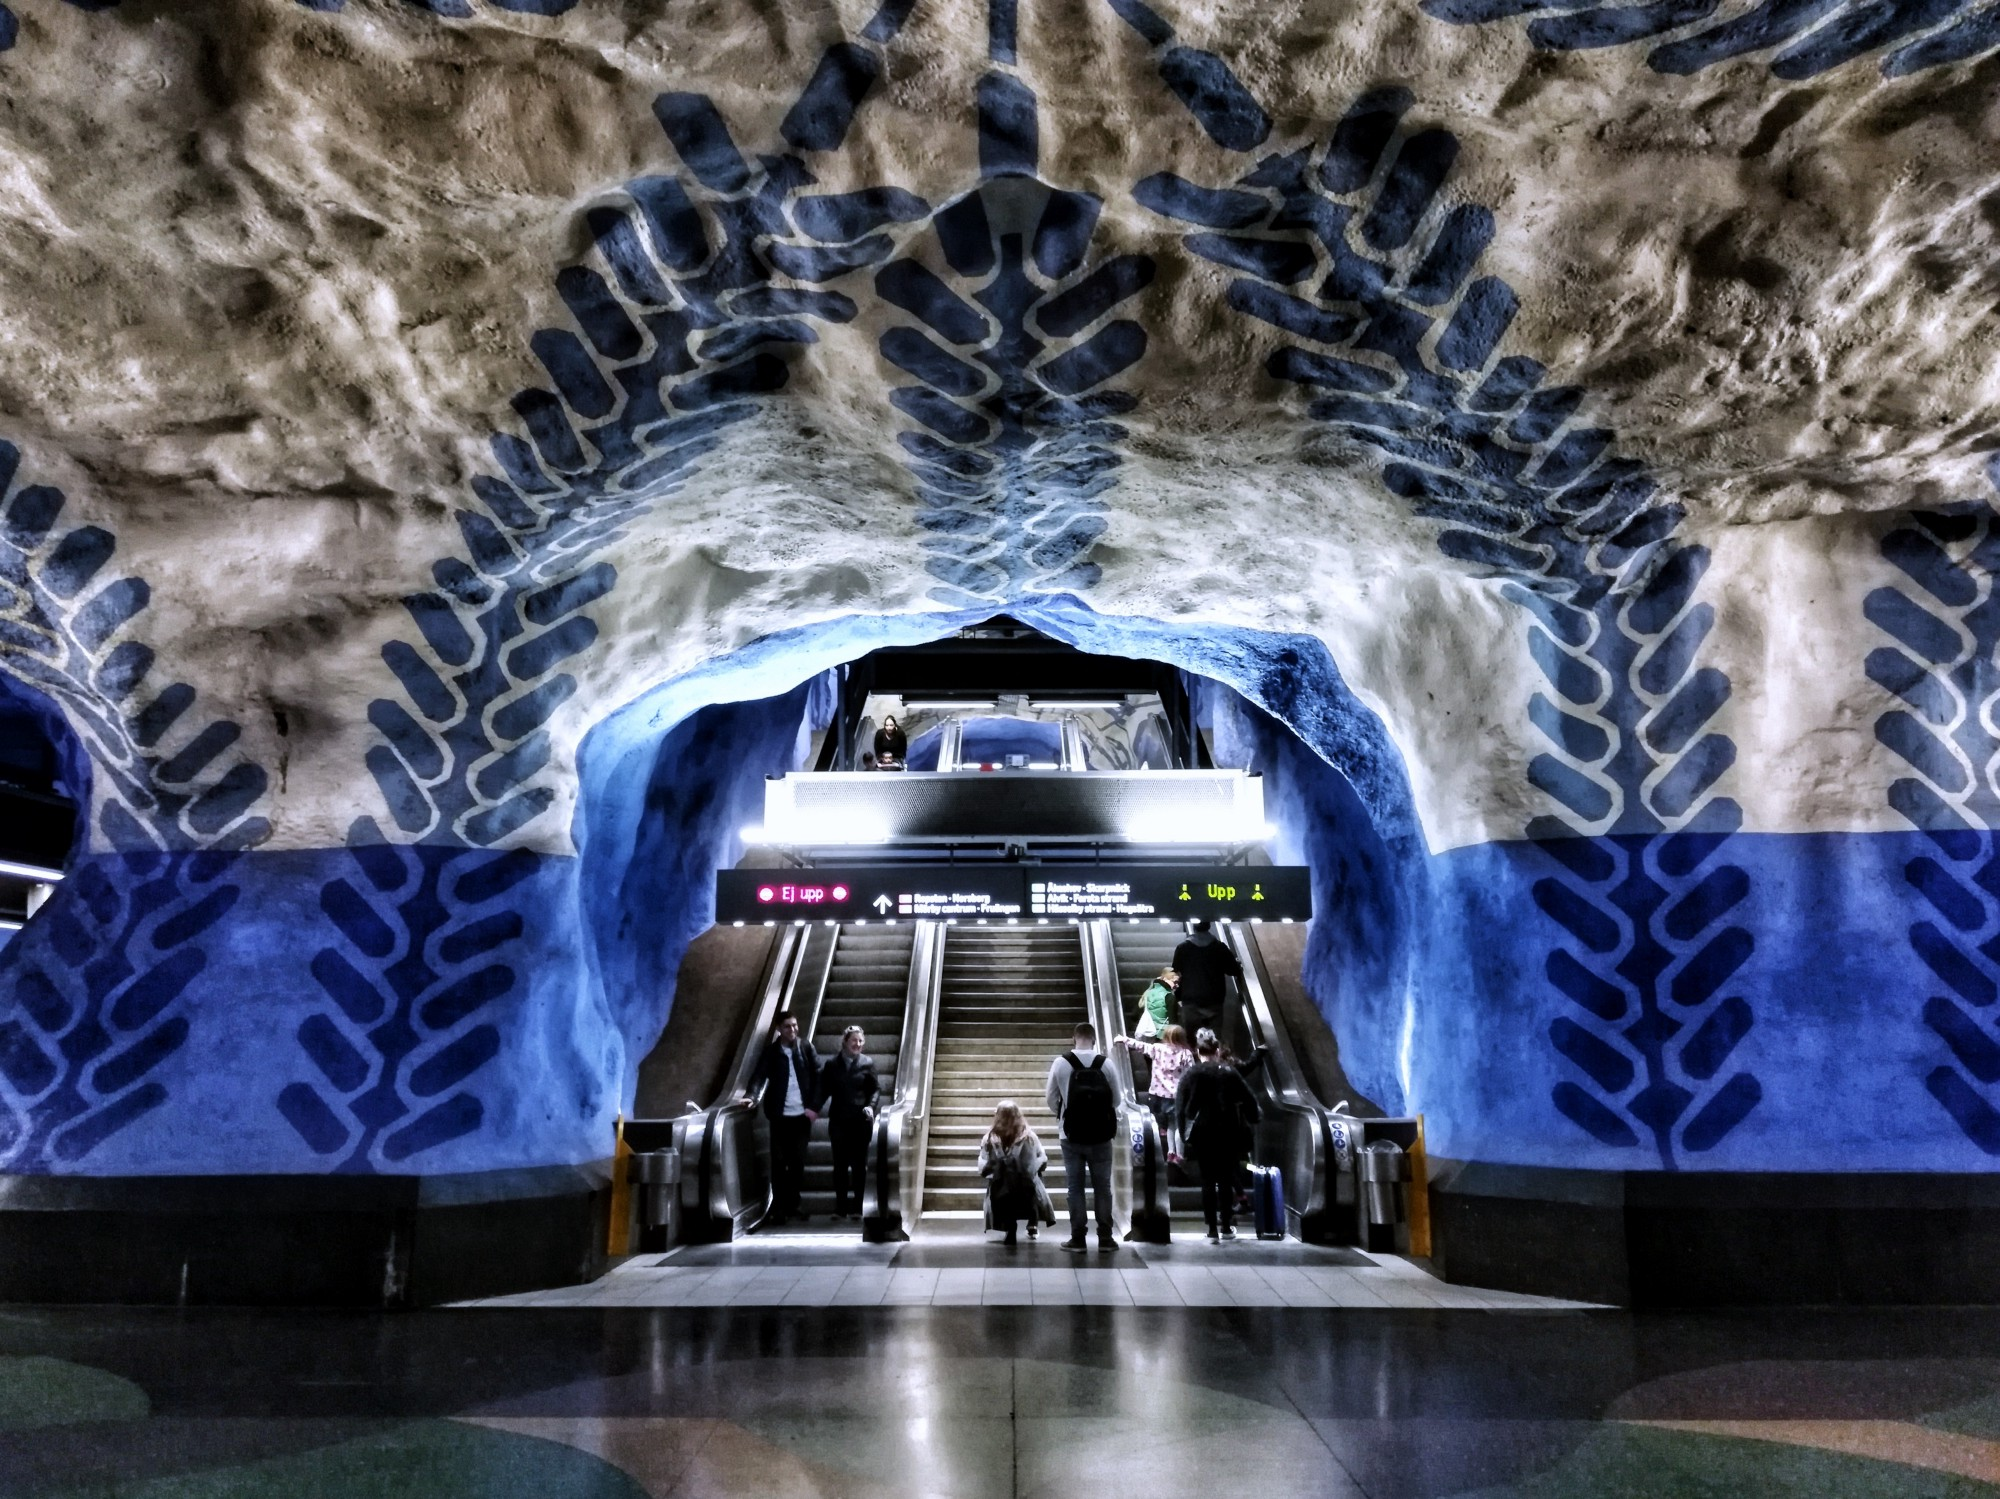 subway tunnel carved out of rock, painted with graphiti